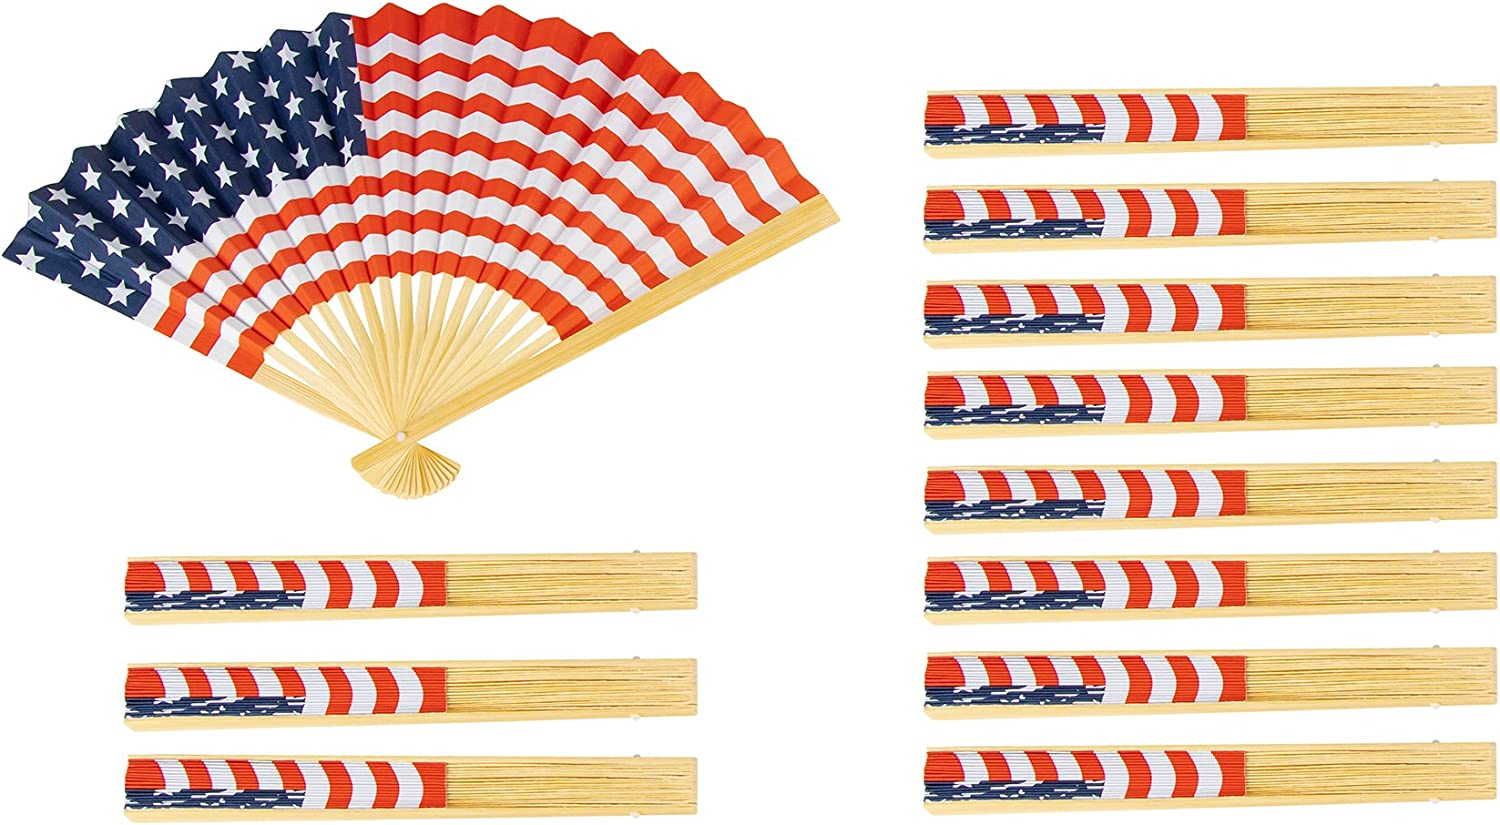 Amazon Com Bamboo Folding Fans American Flag 14 In 12 Pack Toys Games